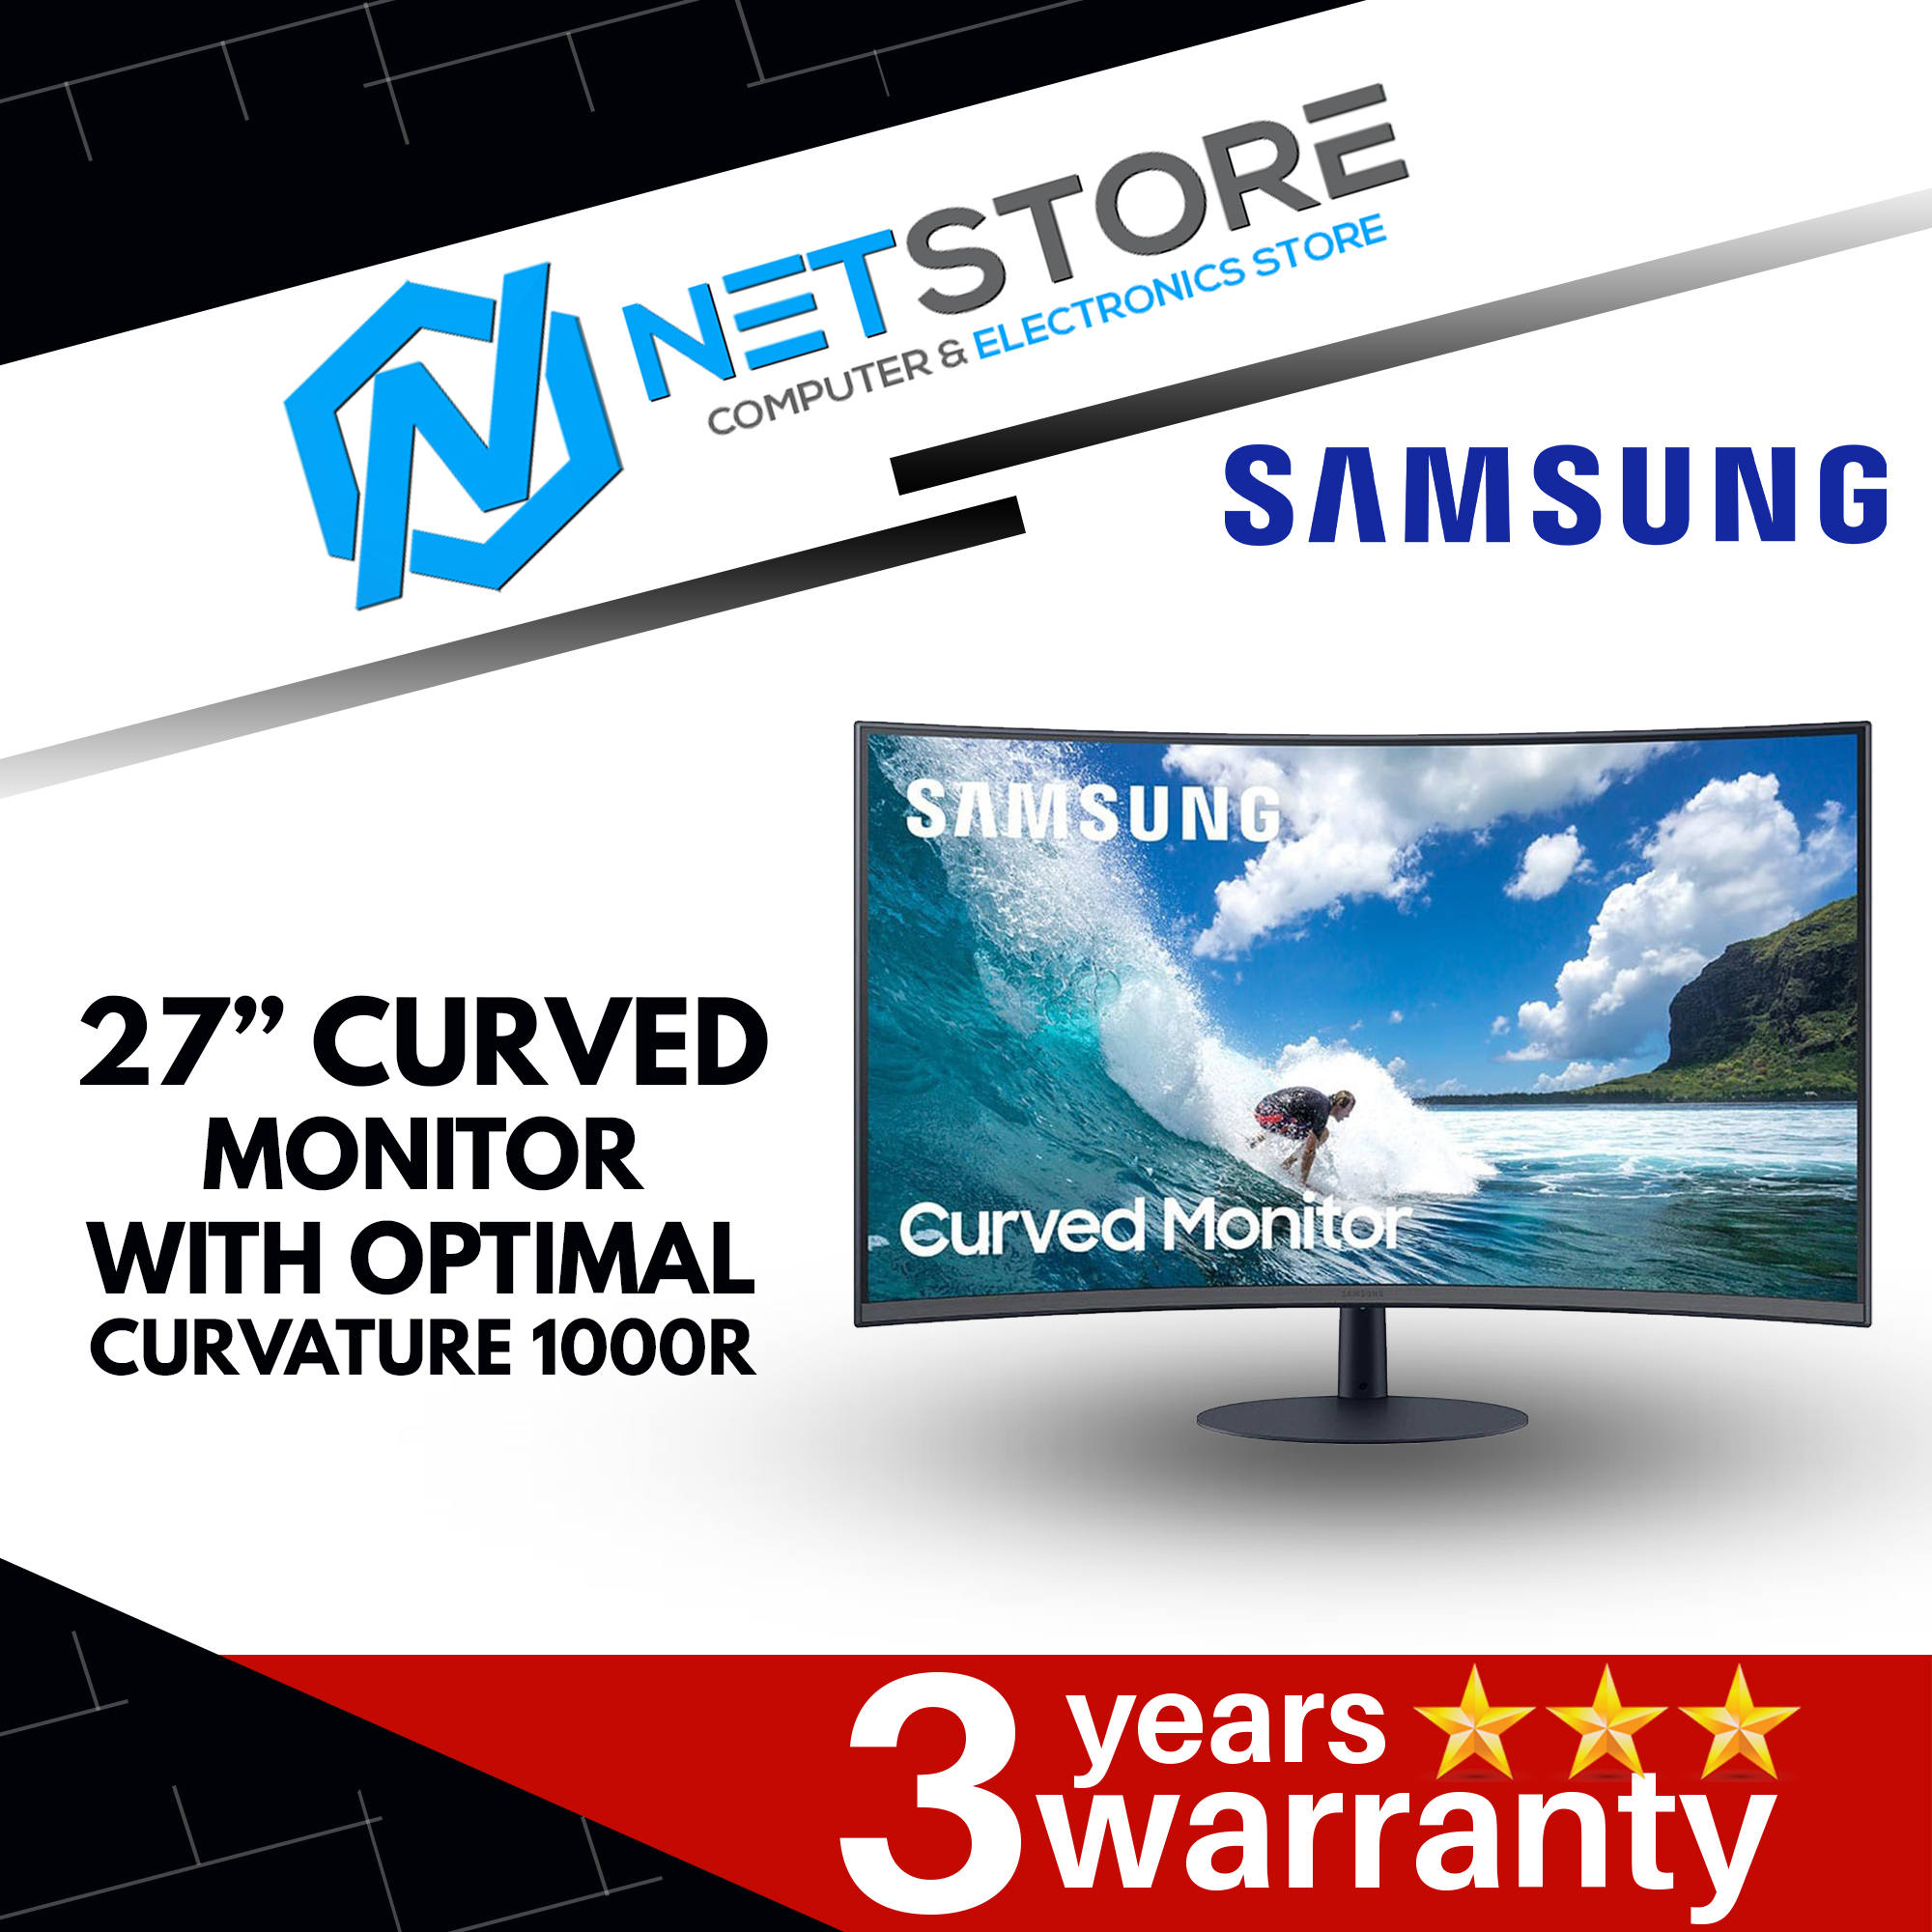 "SAMSUNG 27"" CURVED MONITOR WITH OPTIMAL CURVATURE 1000R LC27T550FDCXXK"